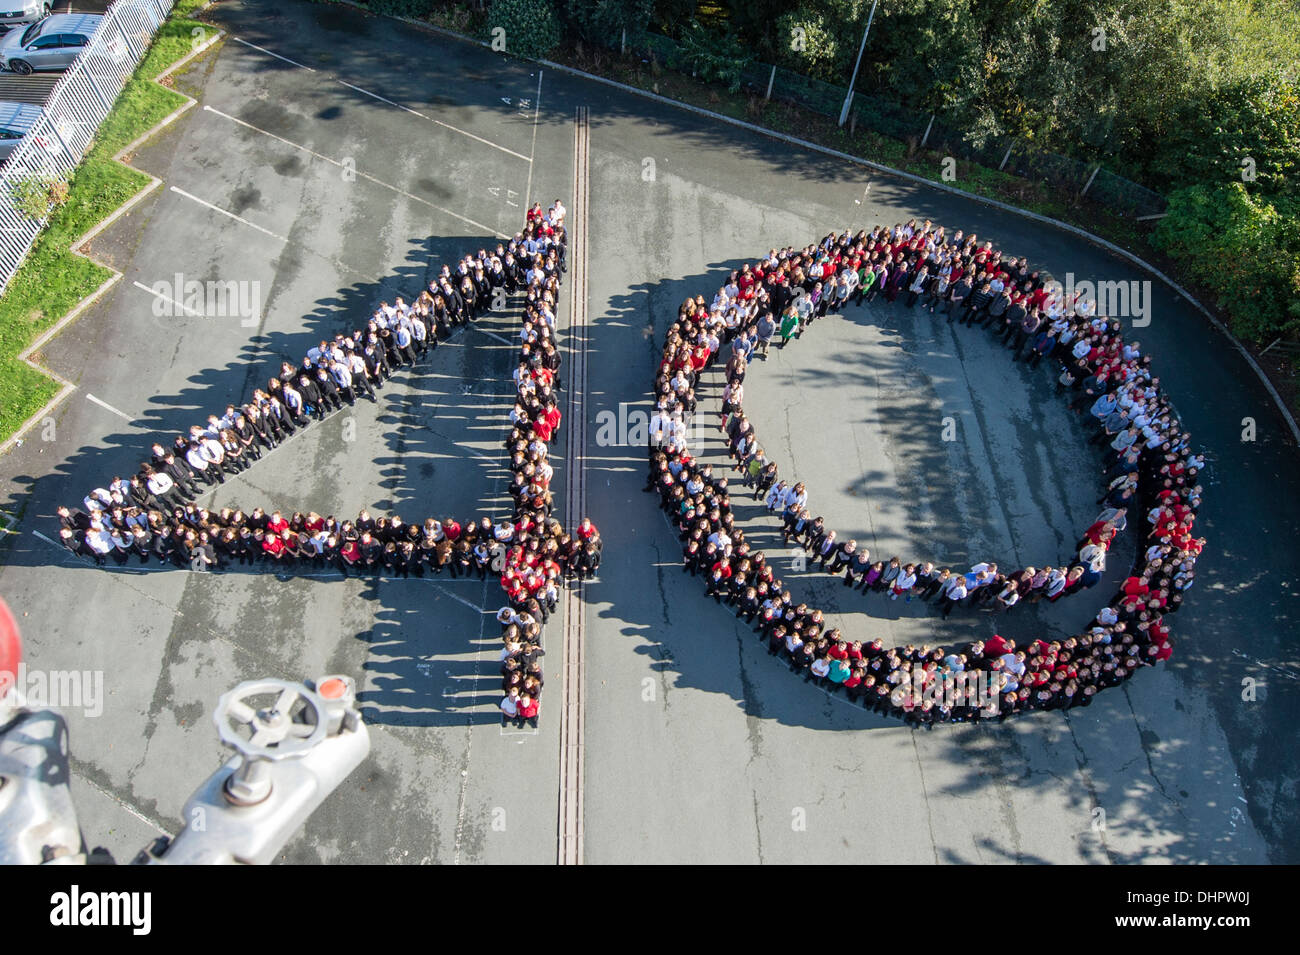 Staff and Pupils of Ysgol Penweddig Aberystwyth Wales UK make the shape of 40 to celebrate 40th anniversary of the school - Stock Image